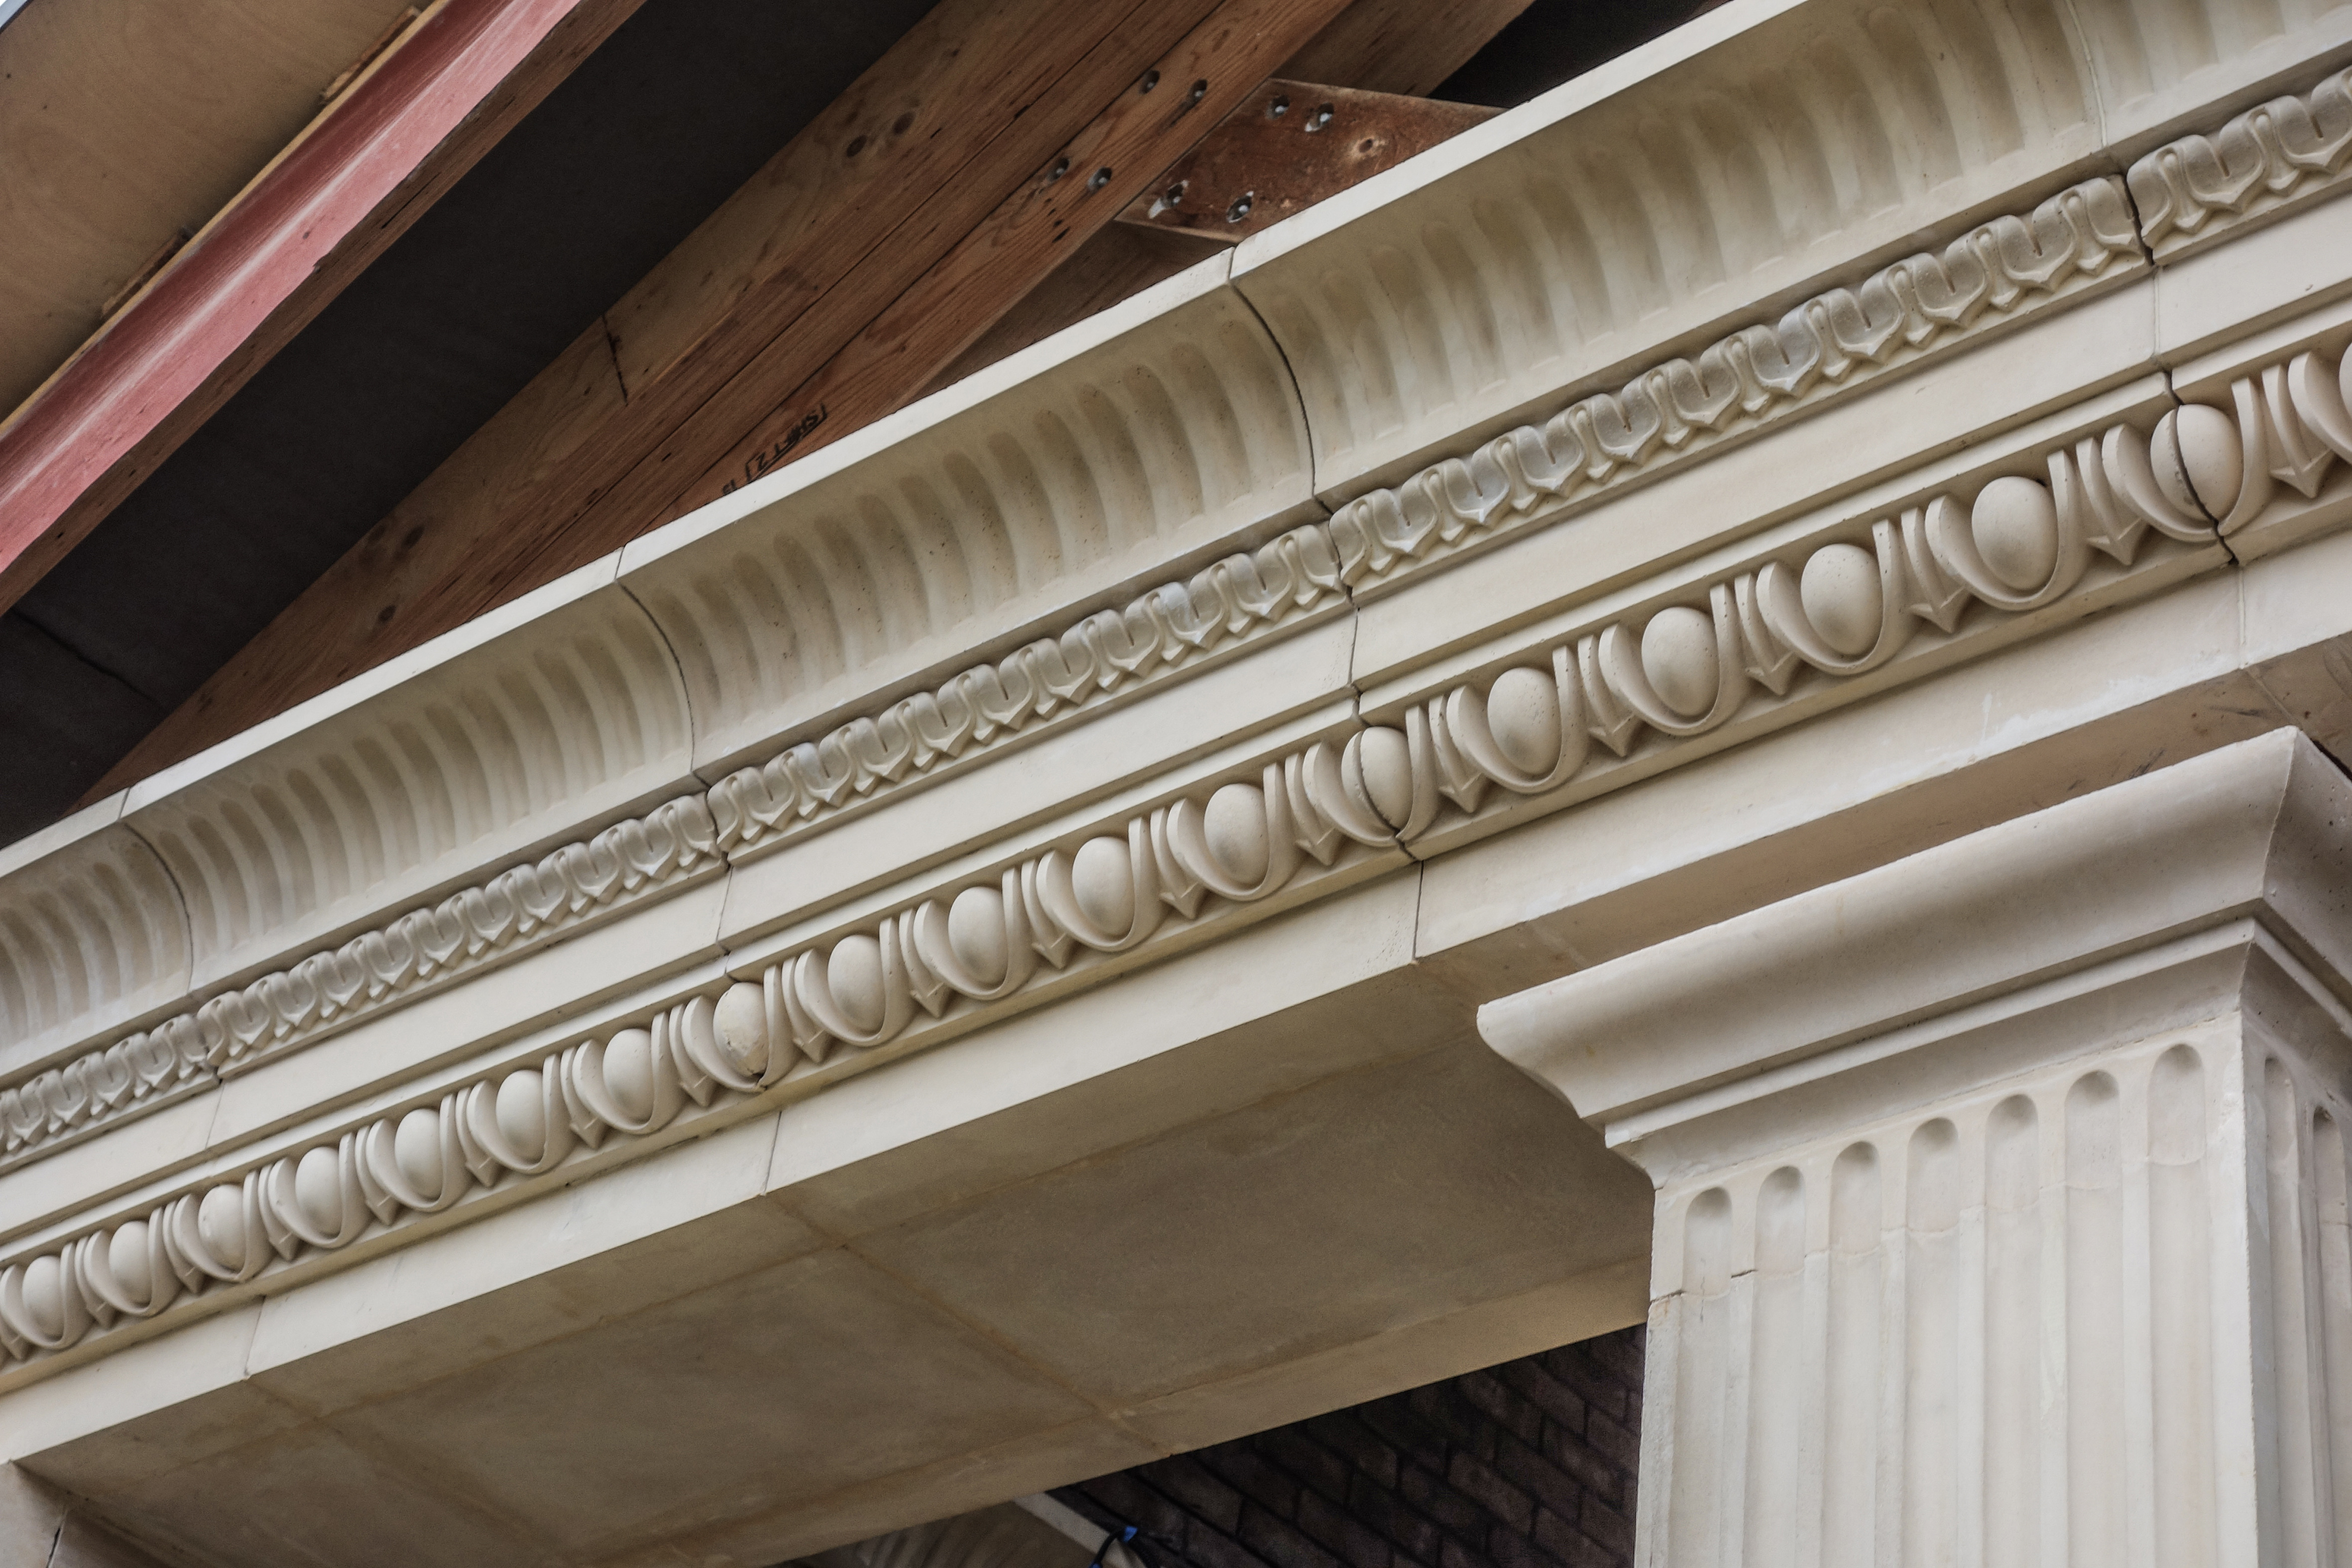 FRAGMENT OF THE CORNICE